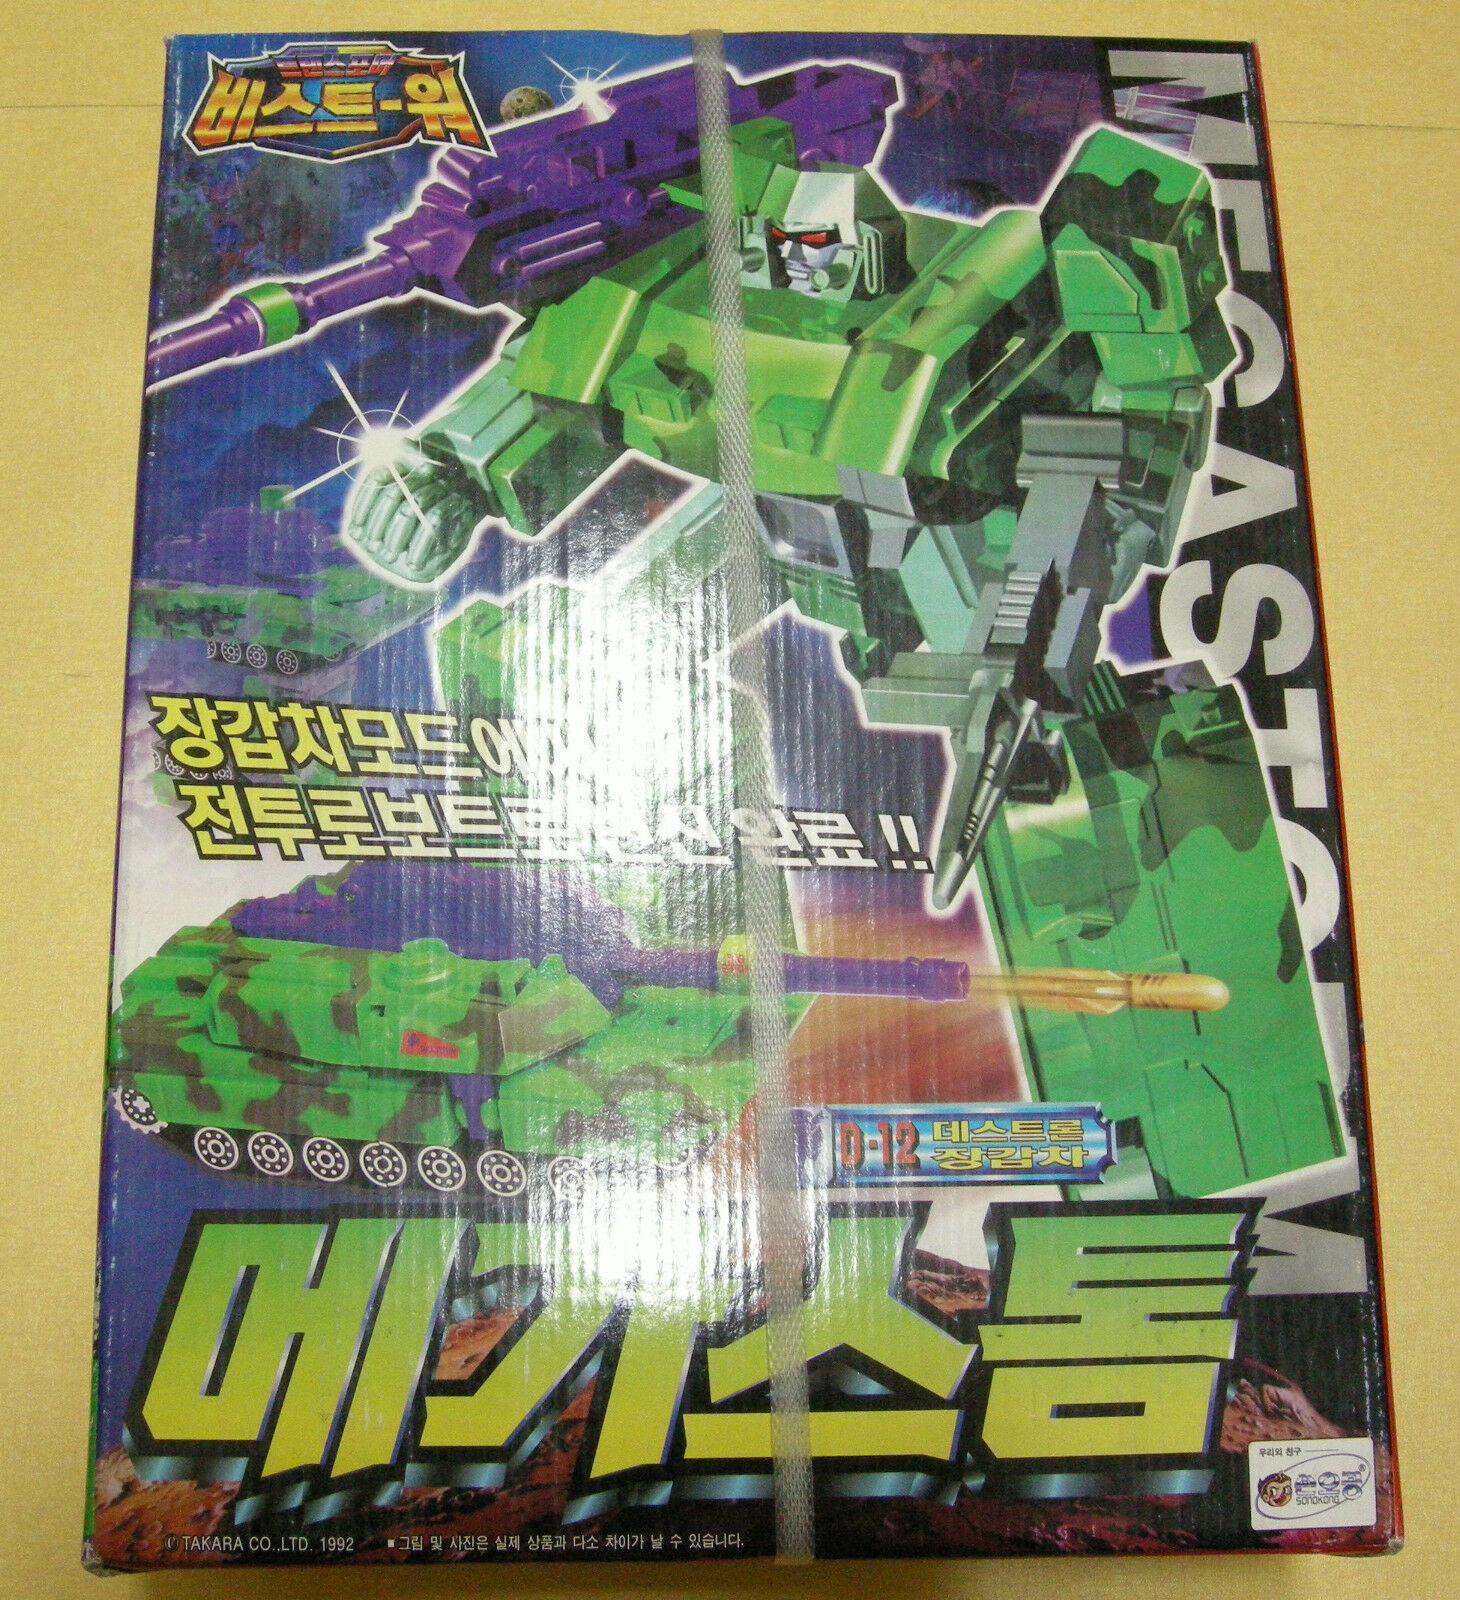 NEW TAKARA TRANSFORMERS BEAST WARS SECOND    D-12 MEGASTORM (MEGA STORM)  Rare